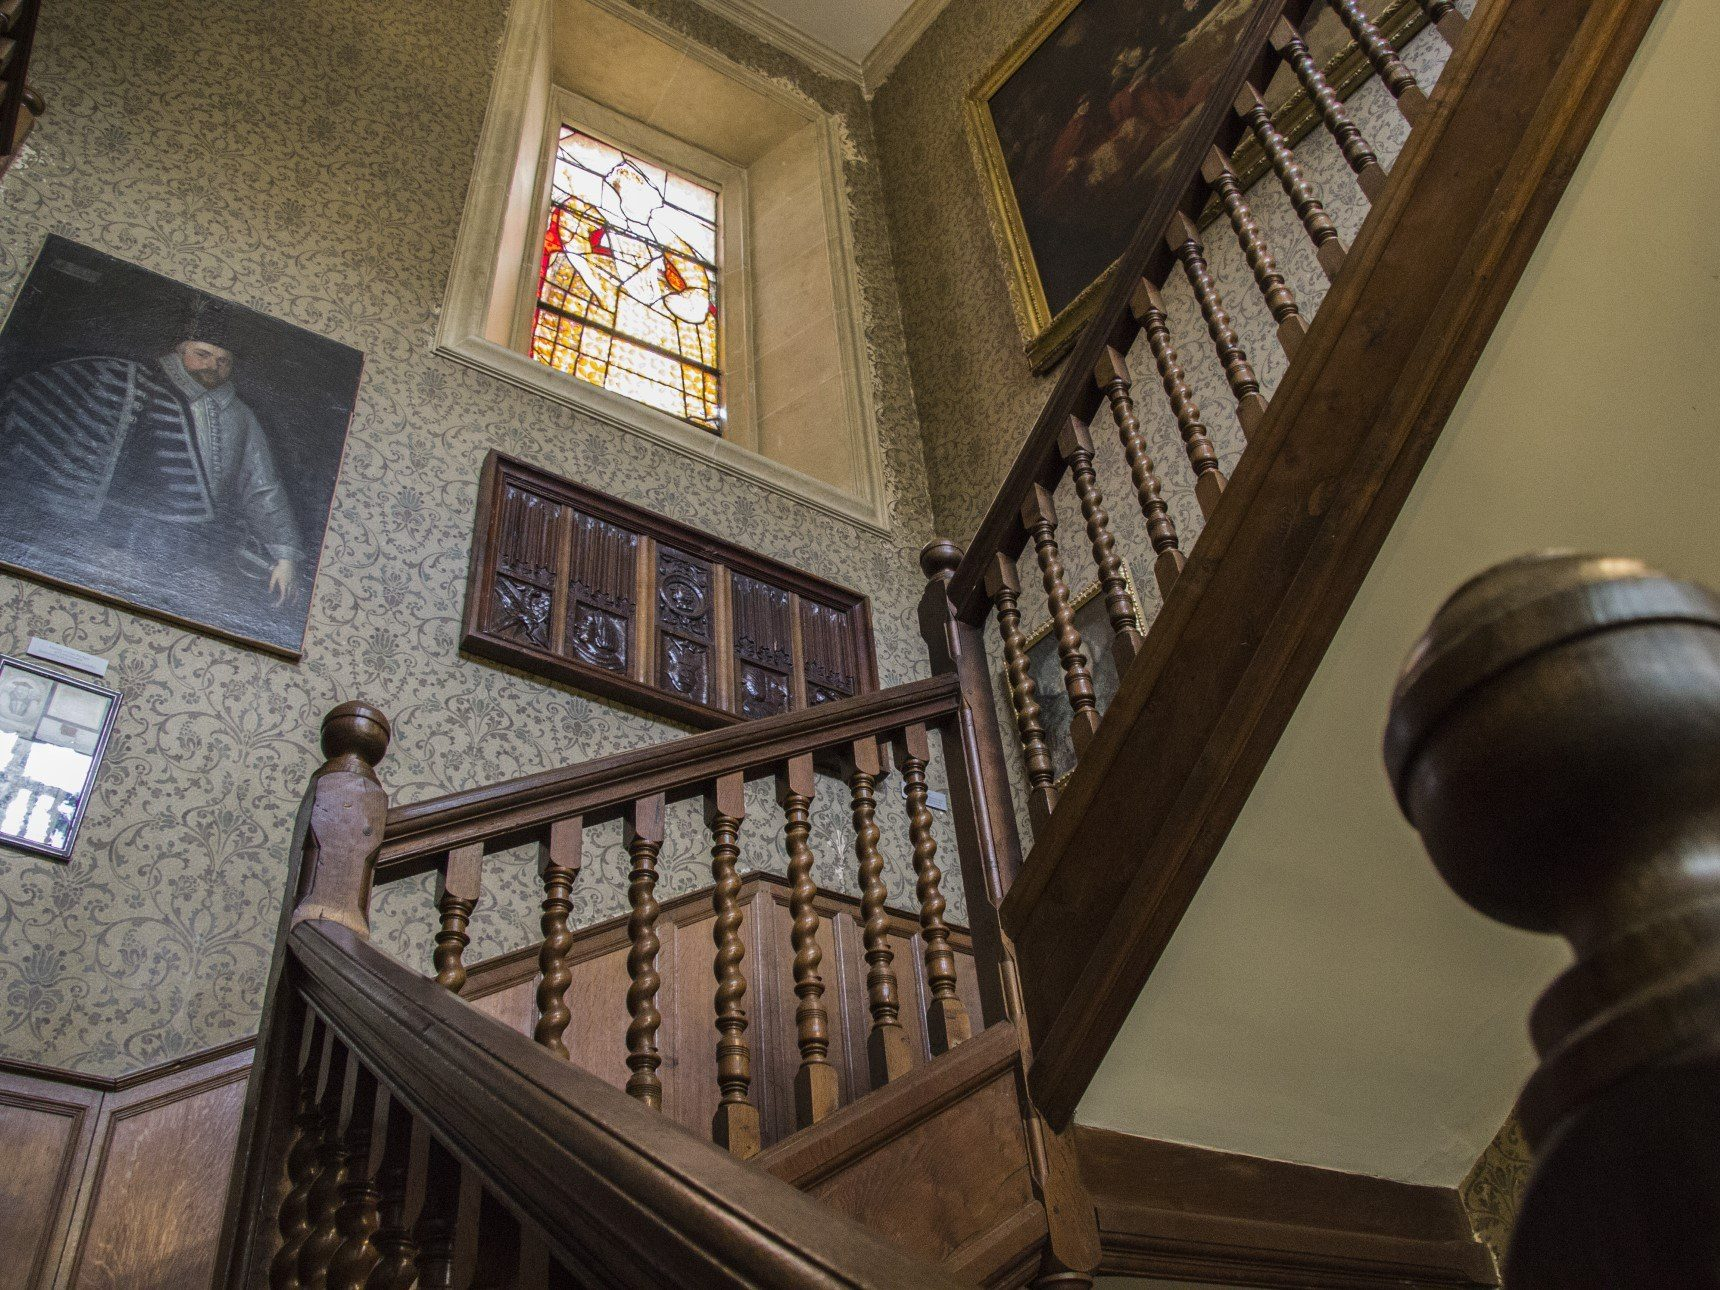 View looking upstairs in South Hall showing a number of paintings on the wall and a stained glass window of Elizabeth I